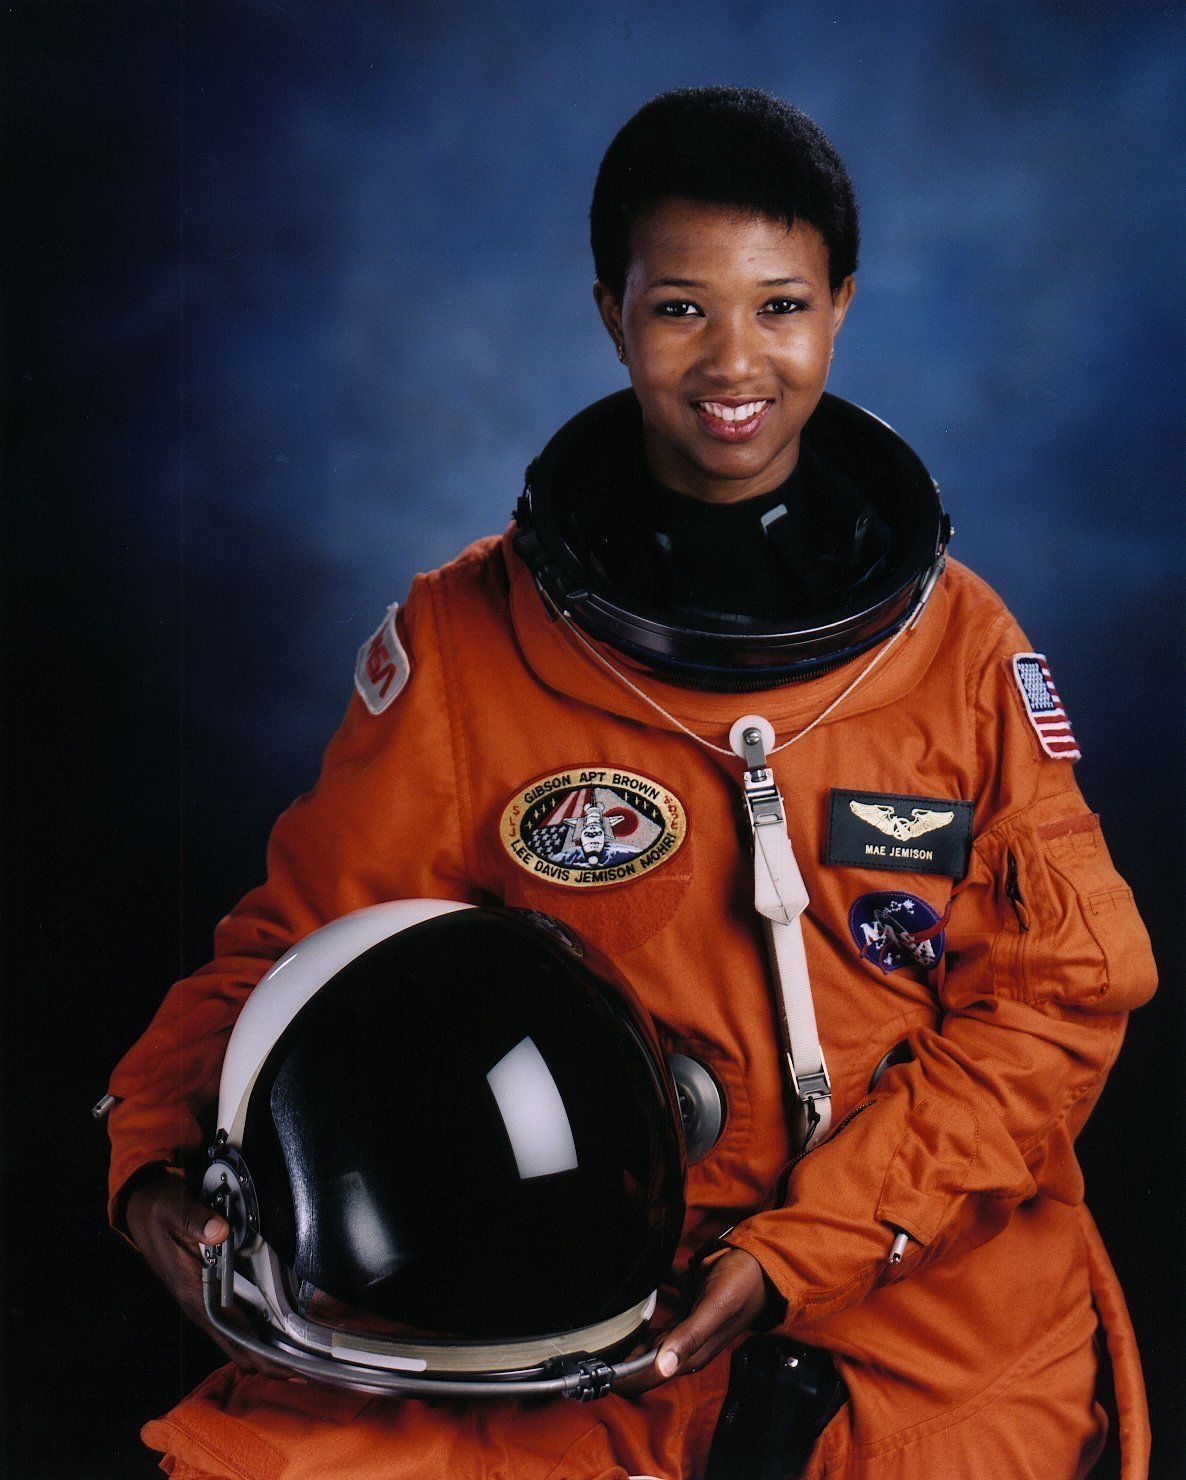 In 1992, Jemison became the first African-American woman in space.